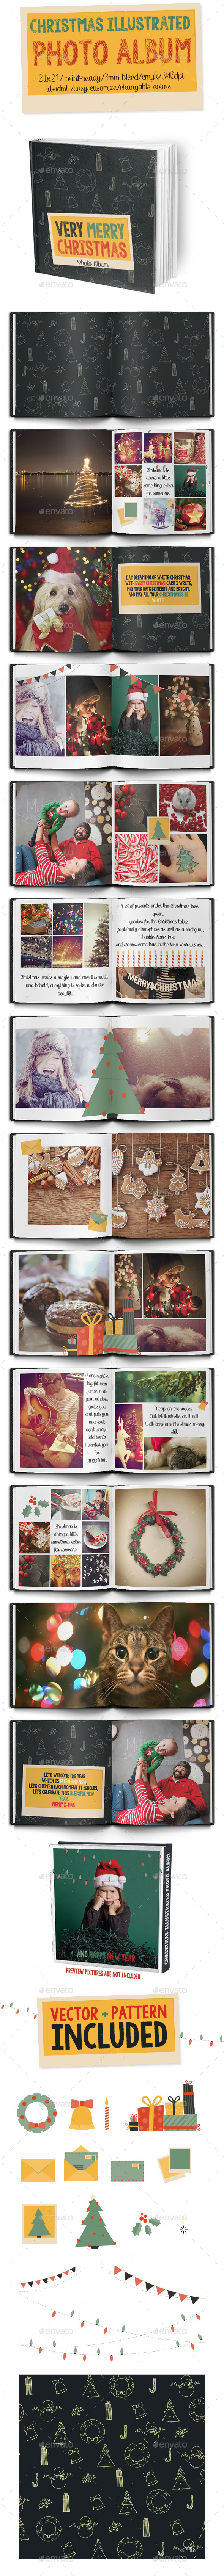 Christmas Illustrated Photo Album